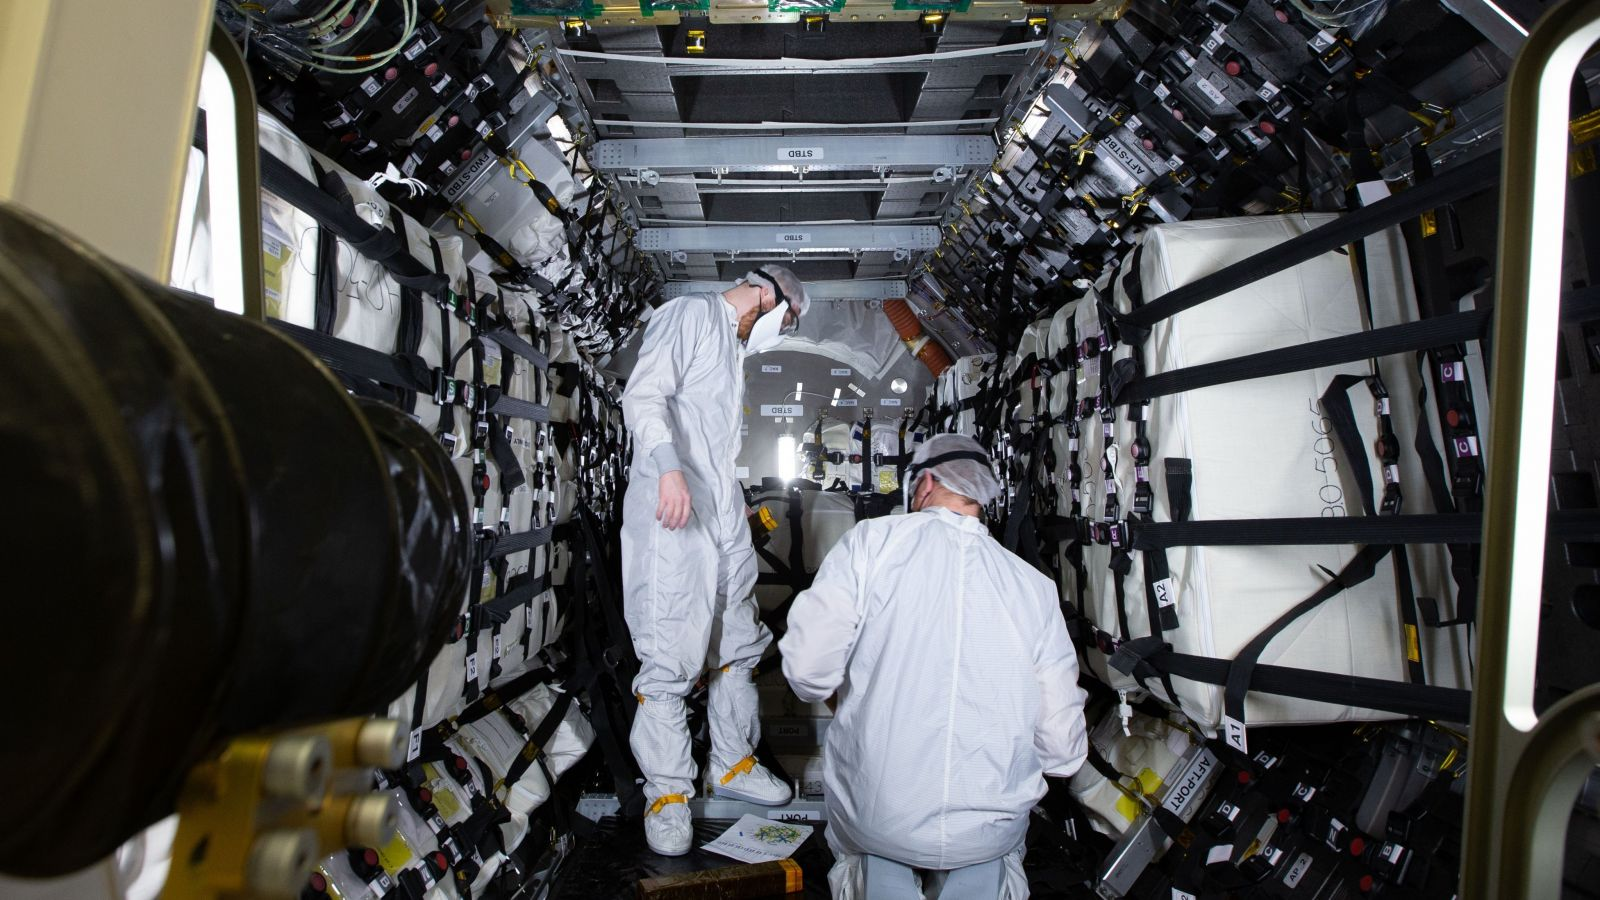 Cargo is placed in the Northrop Grumman NG-15 Cygnus spacecraft for delivery to the International Space Station. Credit: NASA